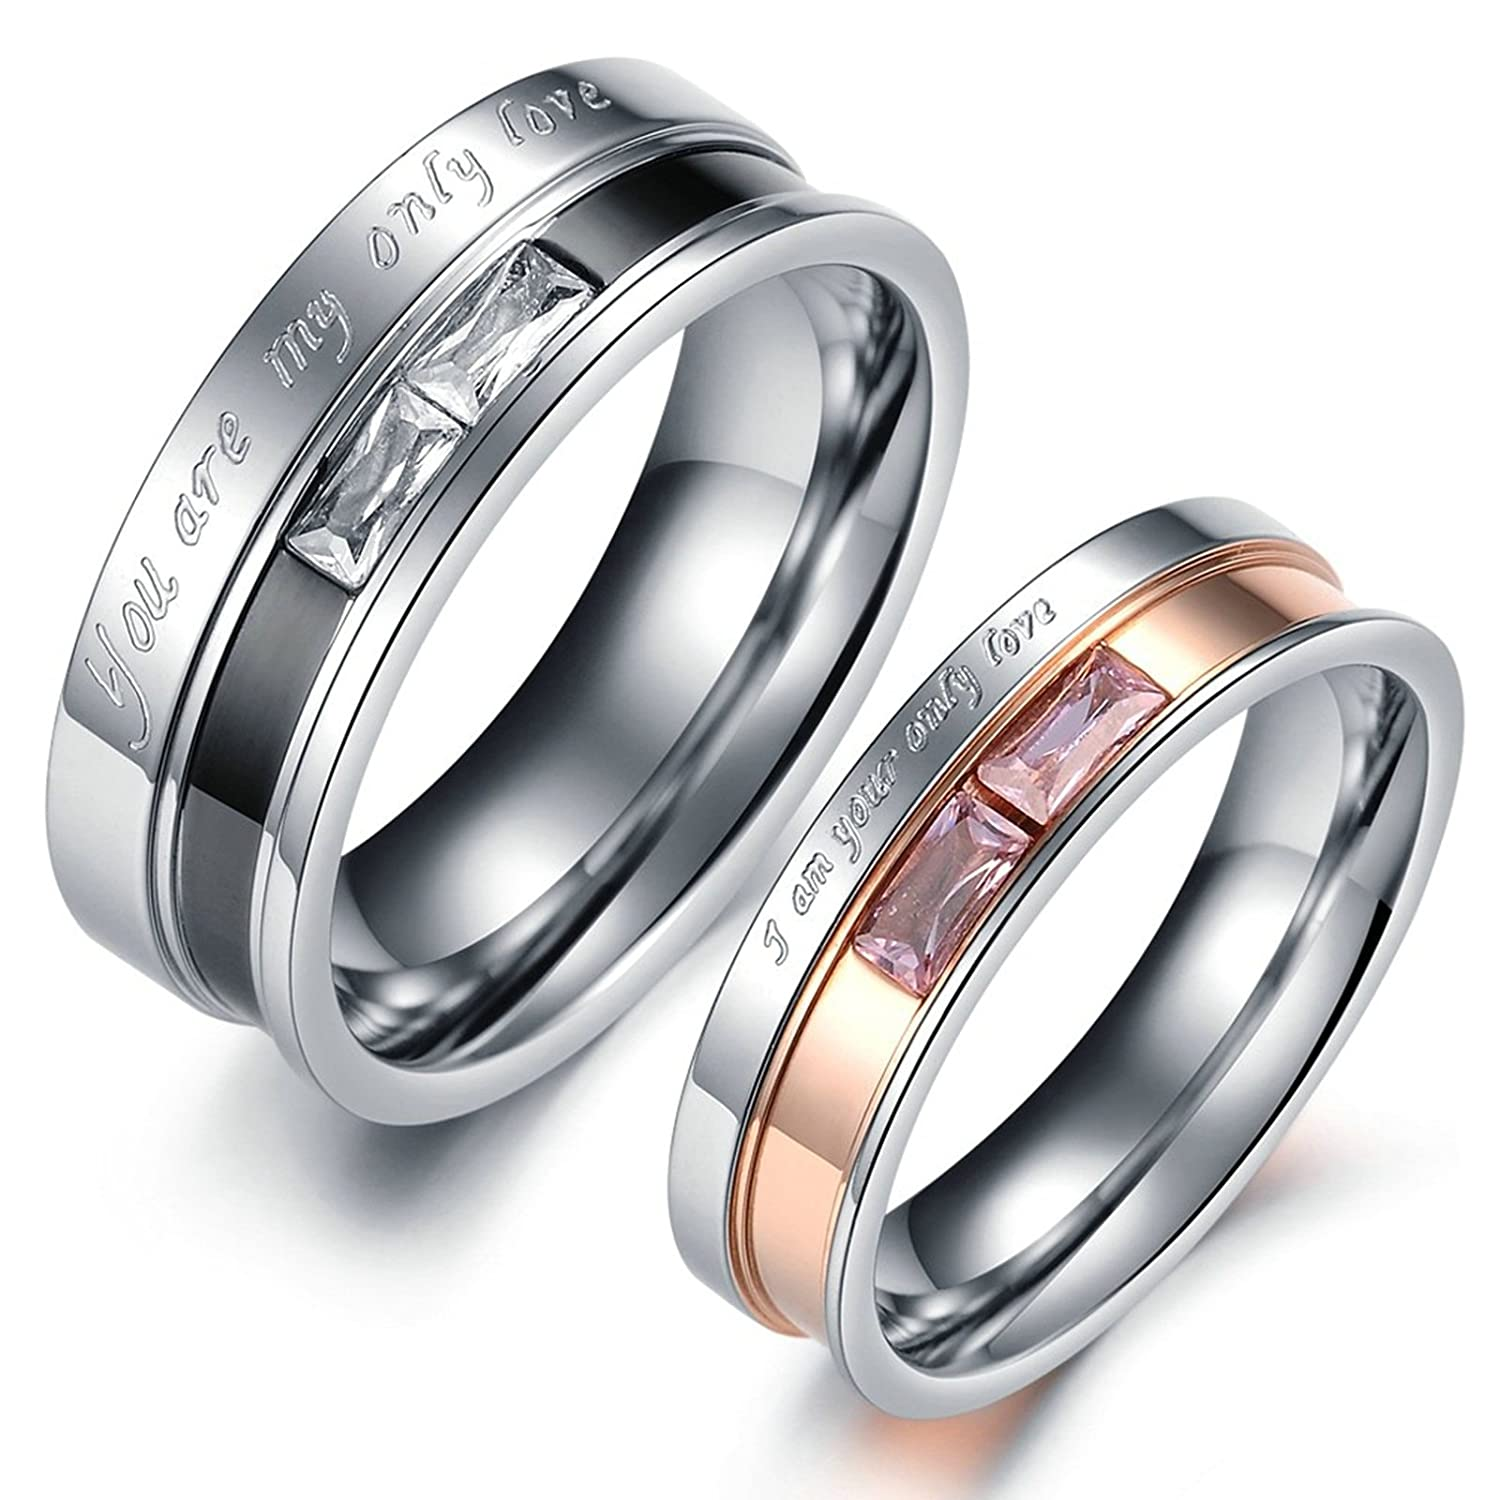 Amazon.com: Wedding Rings for Men and Women Rings Silver Engagement Rings Engraved Women 5 & Men 10: Jewelry